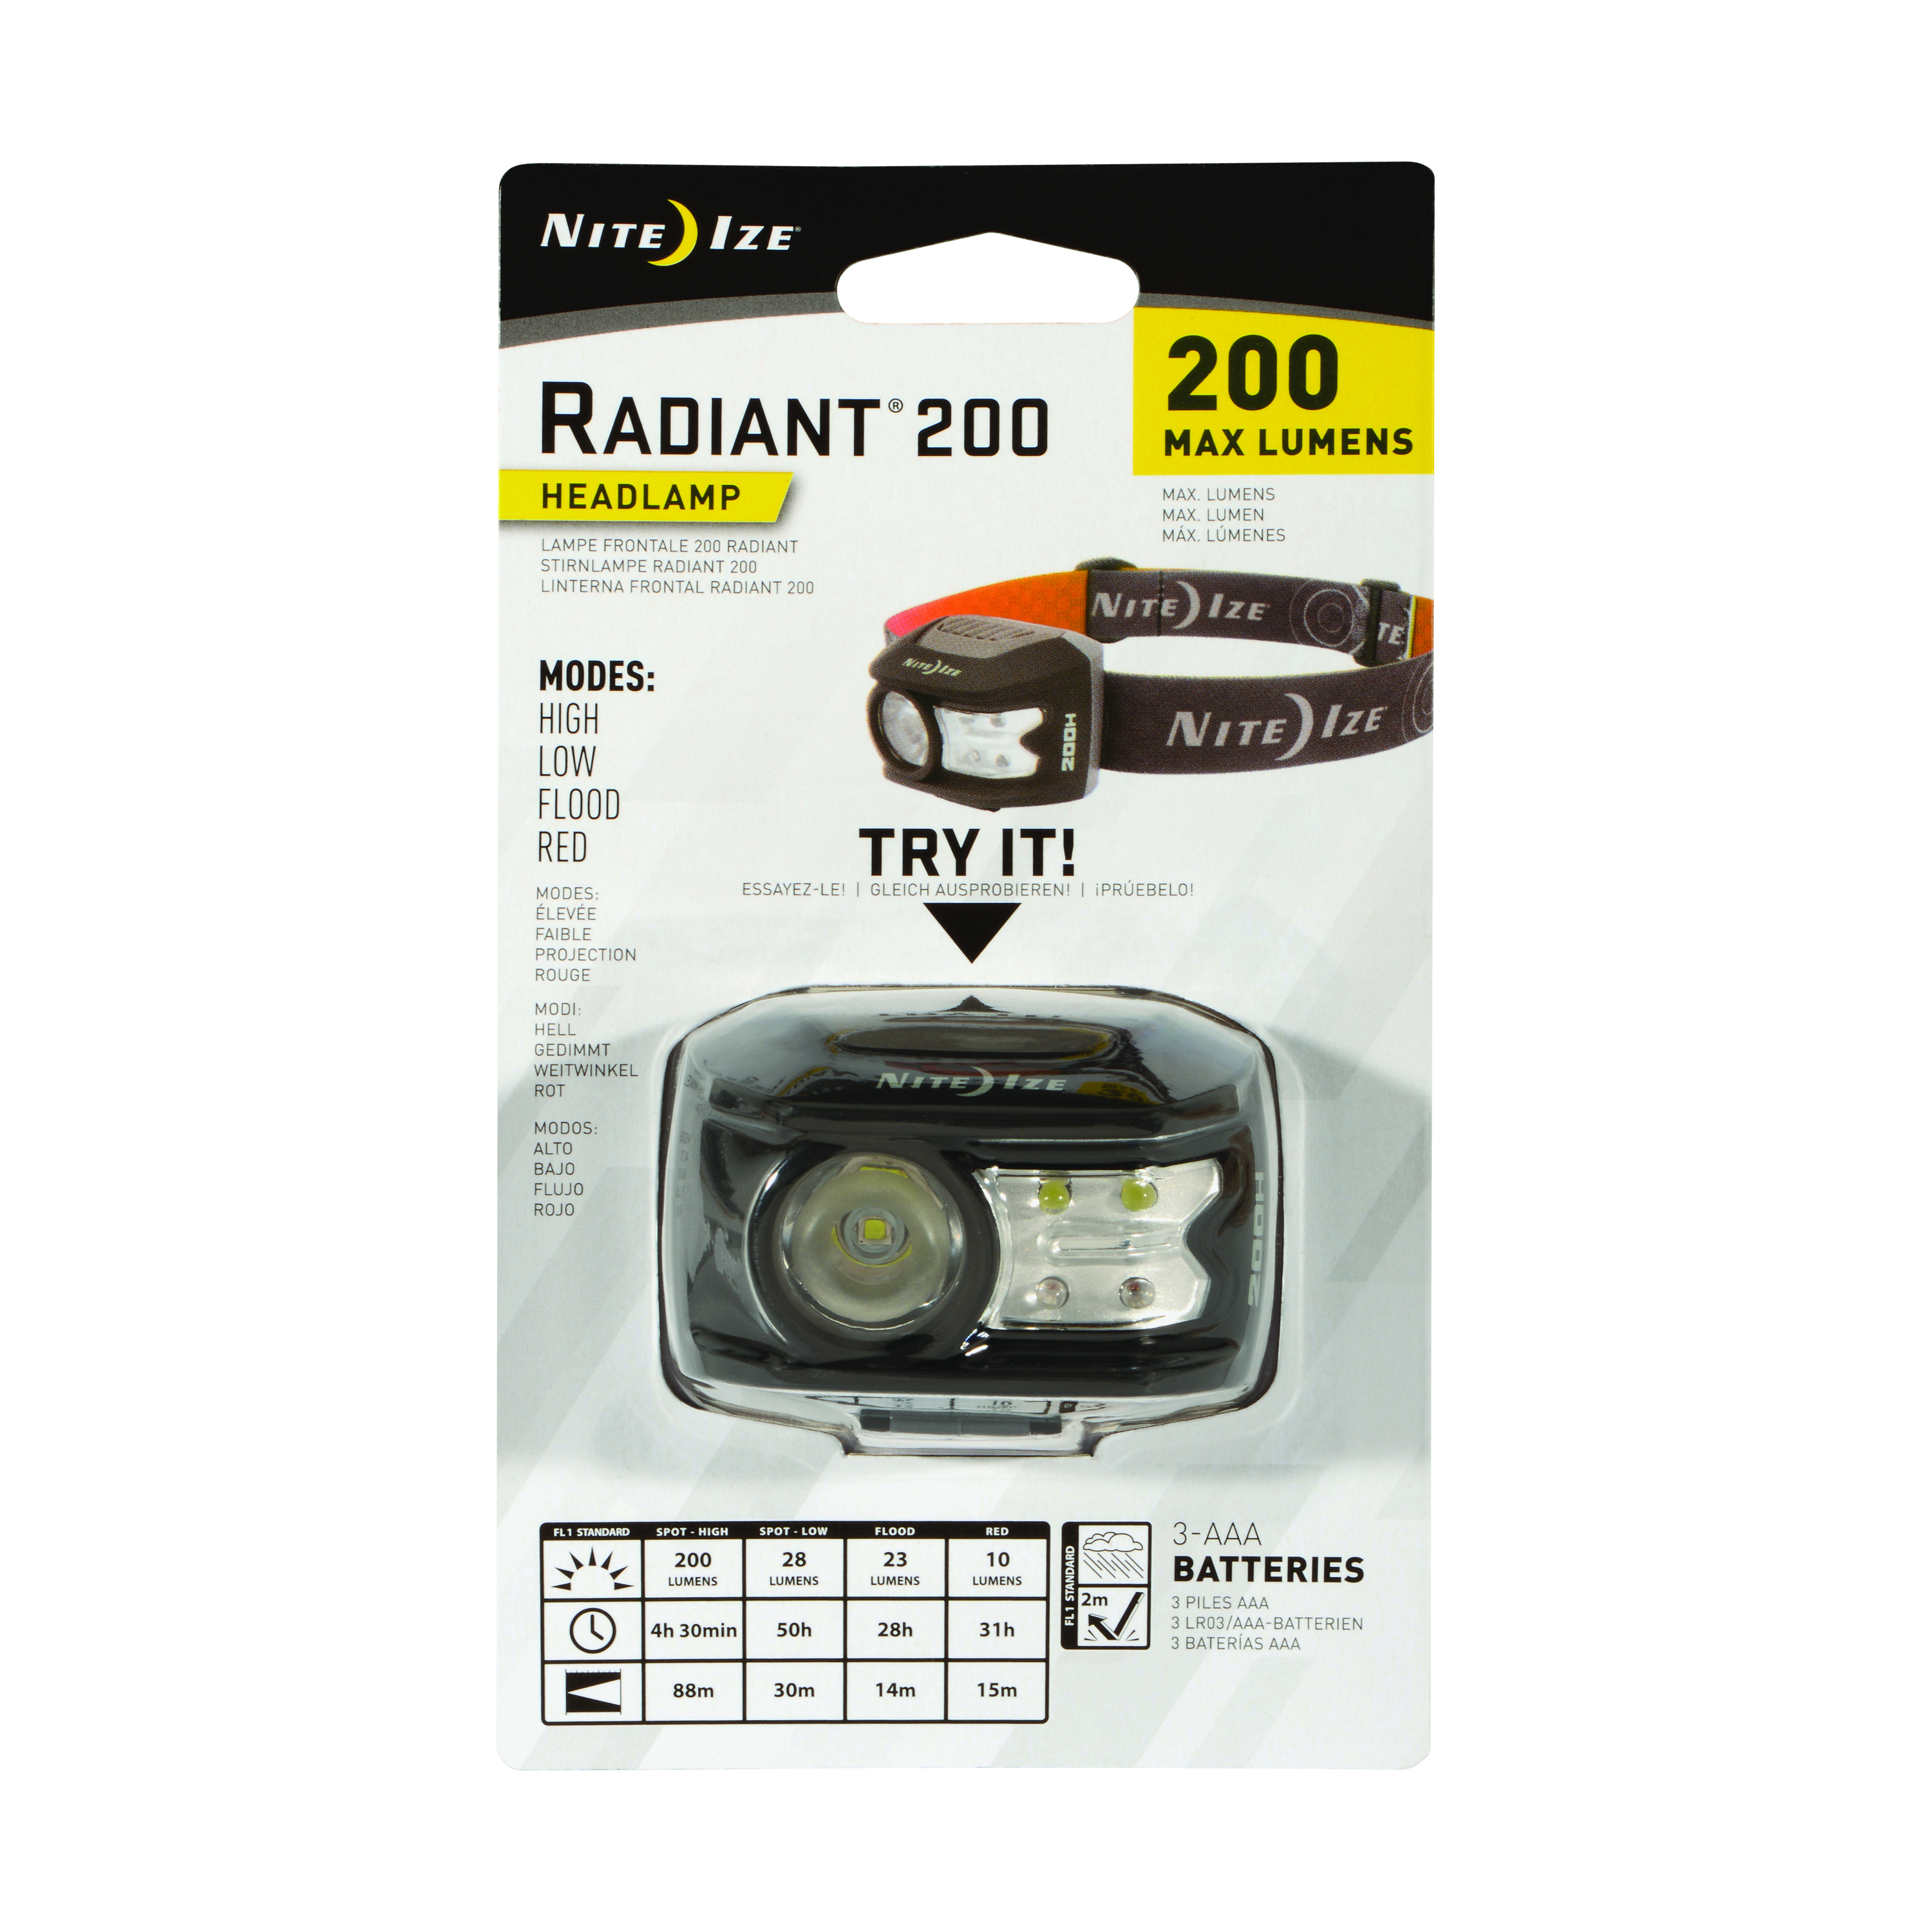 Packing image for Radiant® 200 Headlamp